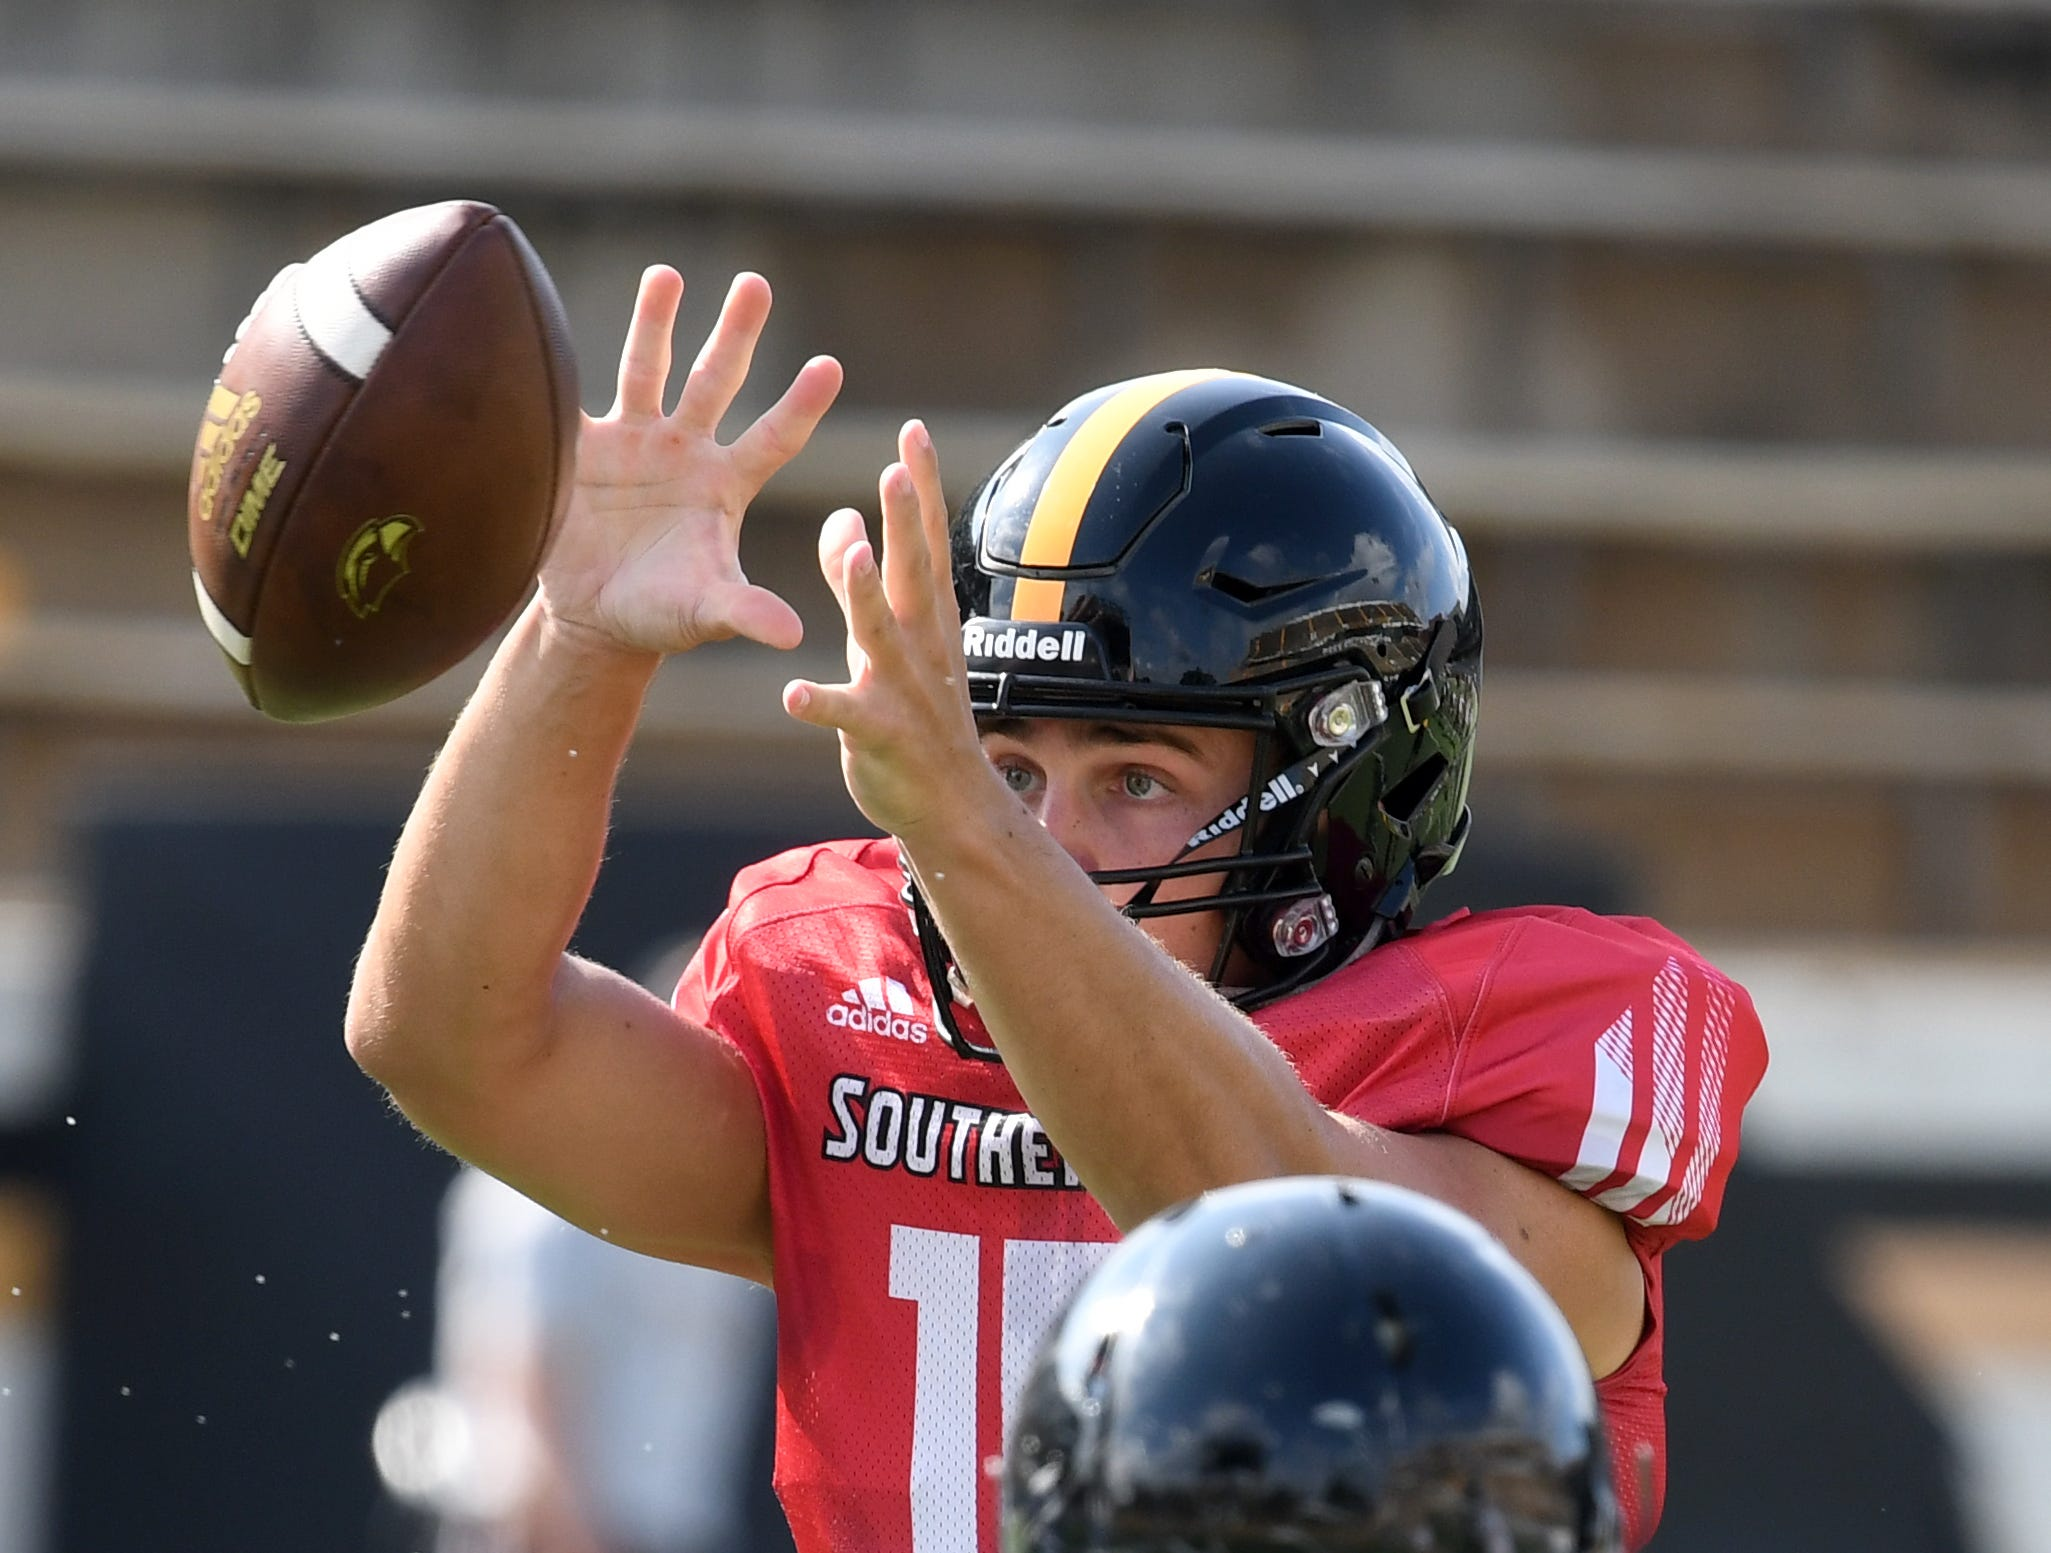 Southern Miss quarterback Jack Abraham catches the snapped ball during the teams last week of fall camp on Monday, August 20, 2018.